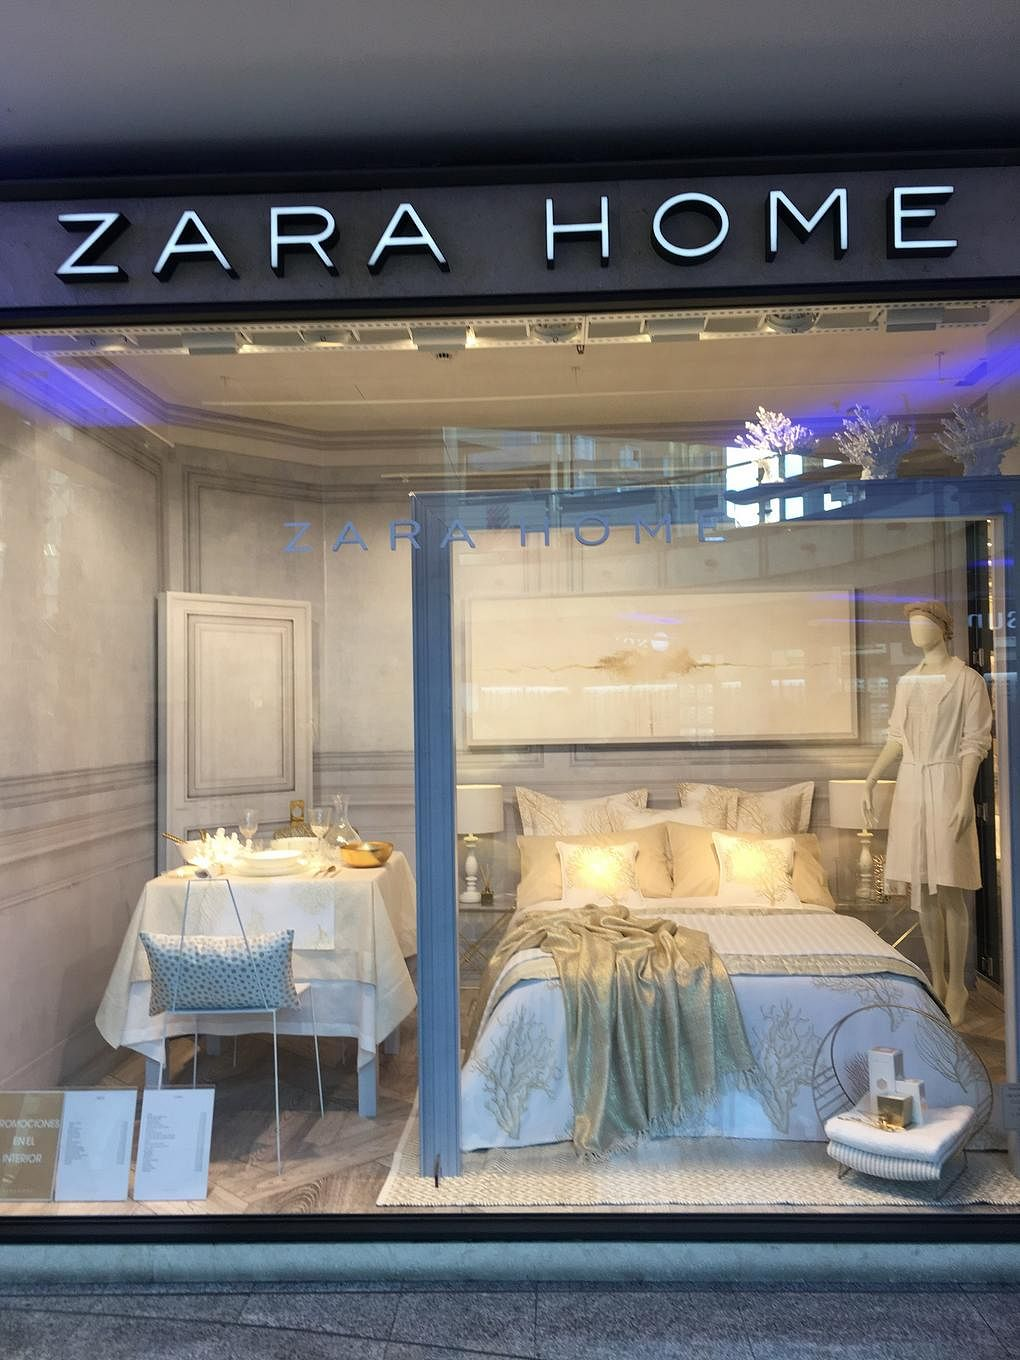 12 pretty home furnishings at zara home in madrid home decor singapore - Zara home accessories ...